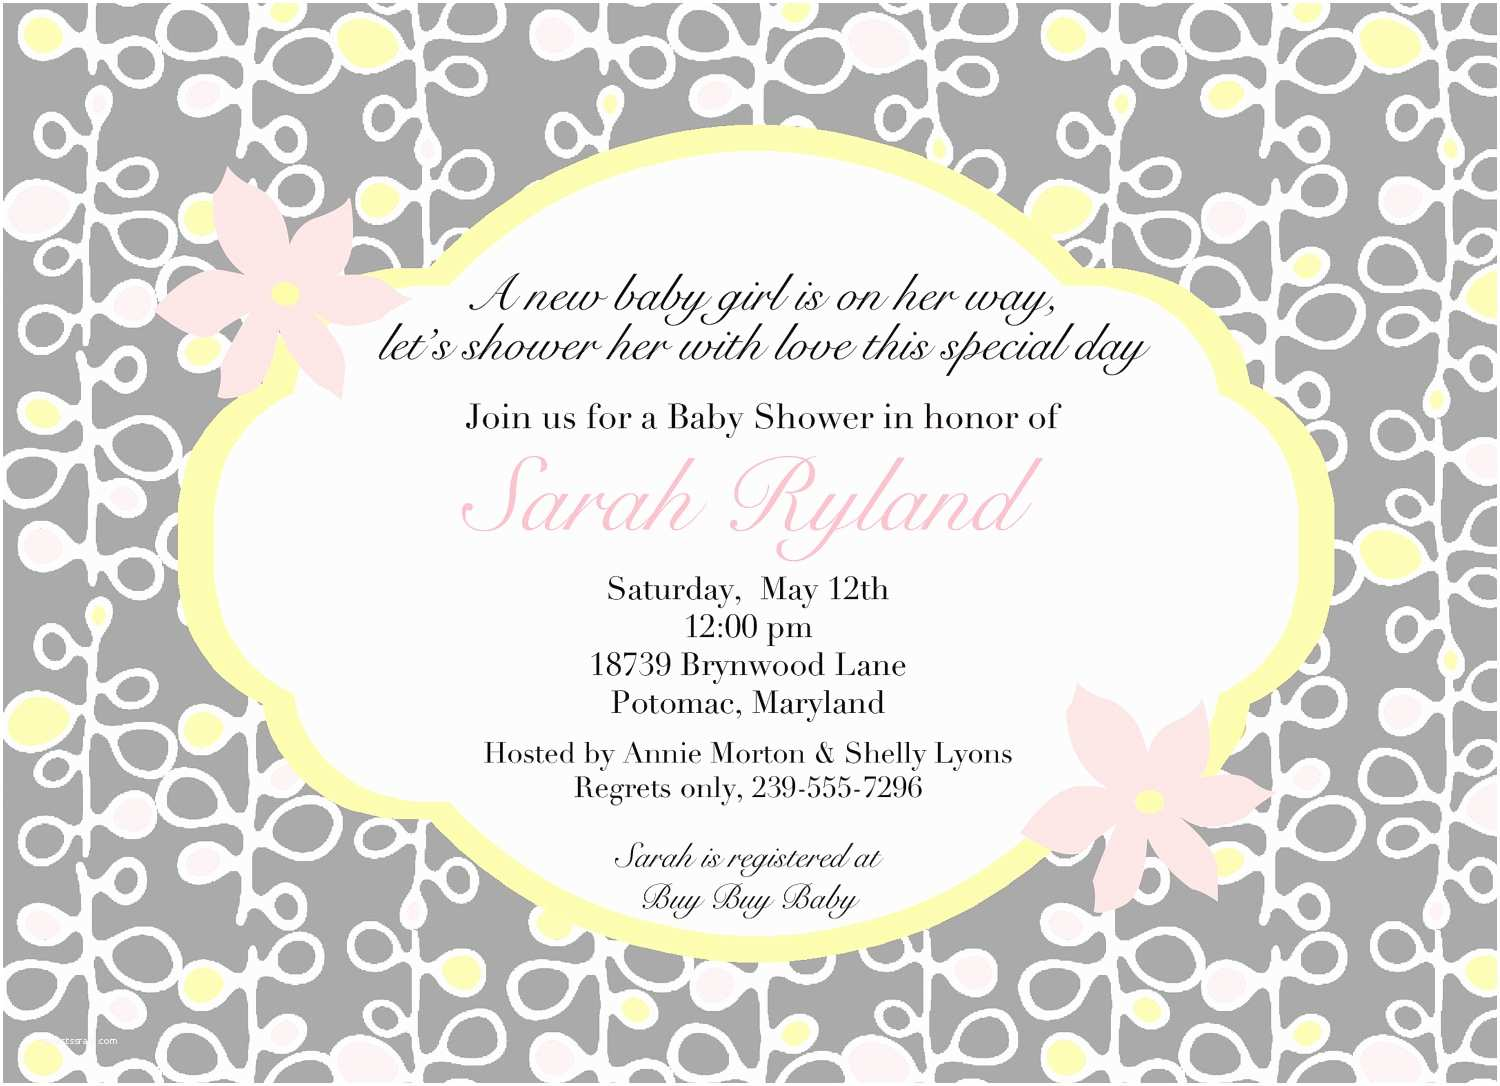 Cute Baby Shower Invitations Cute Wording for Baby Shower Invitations